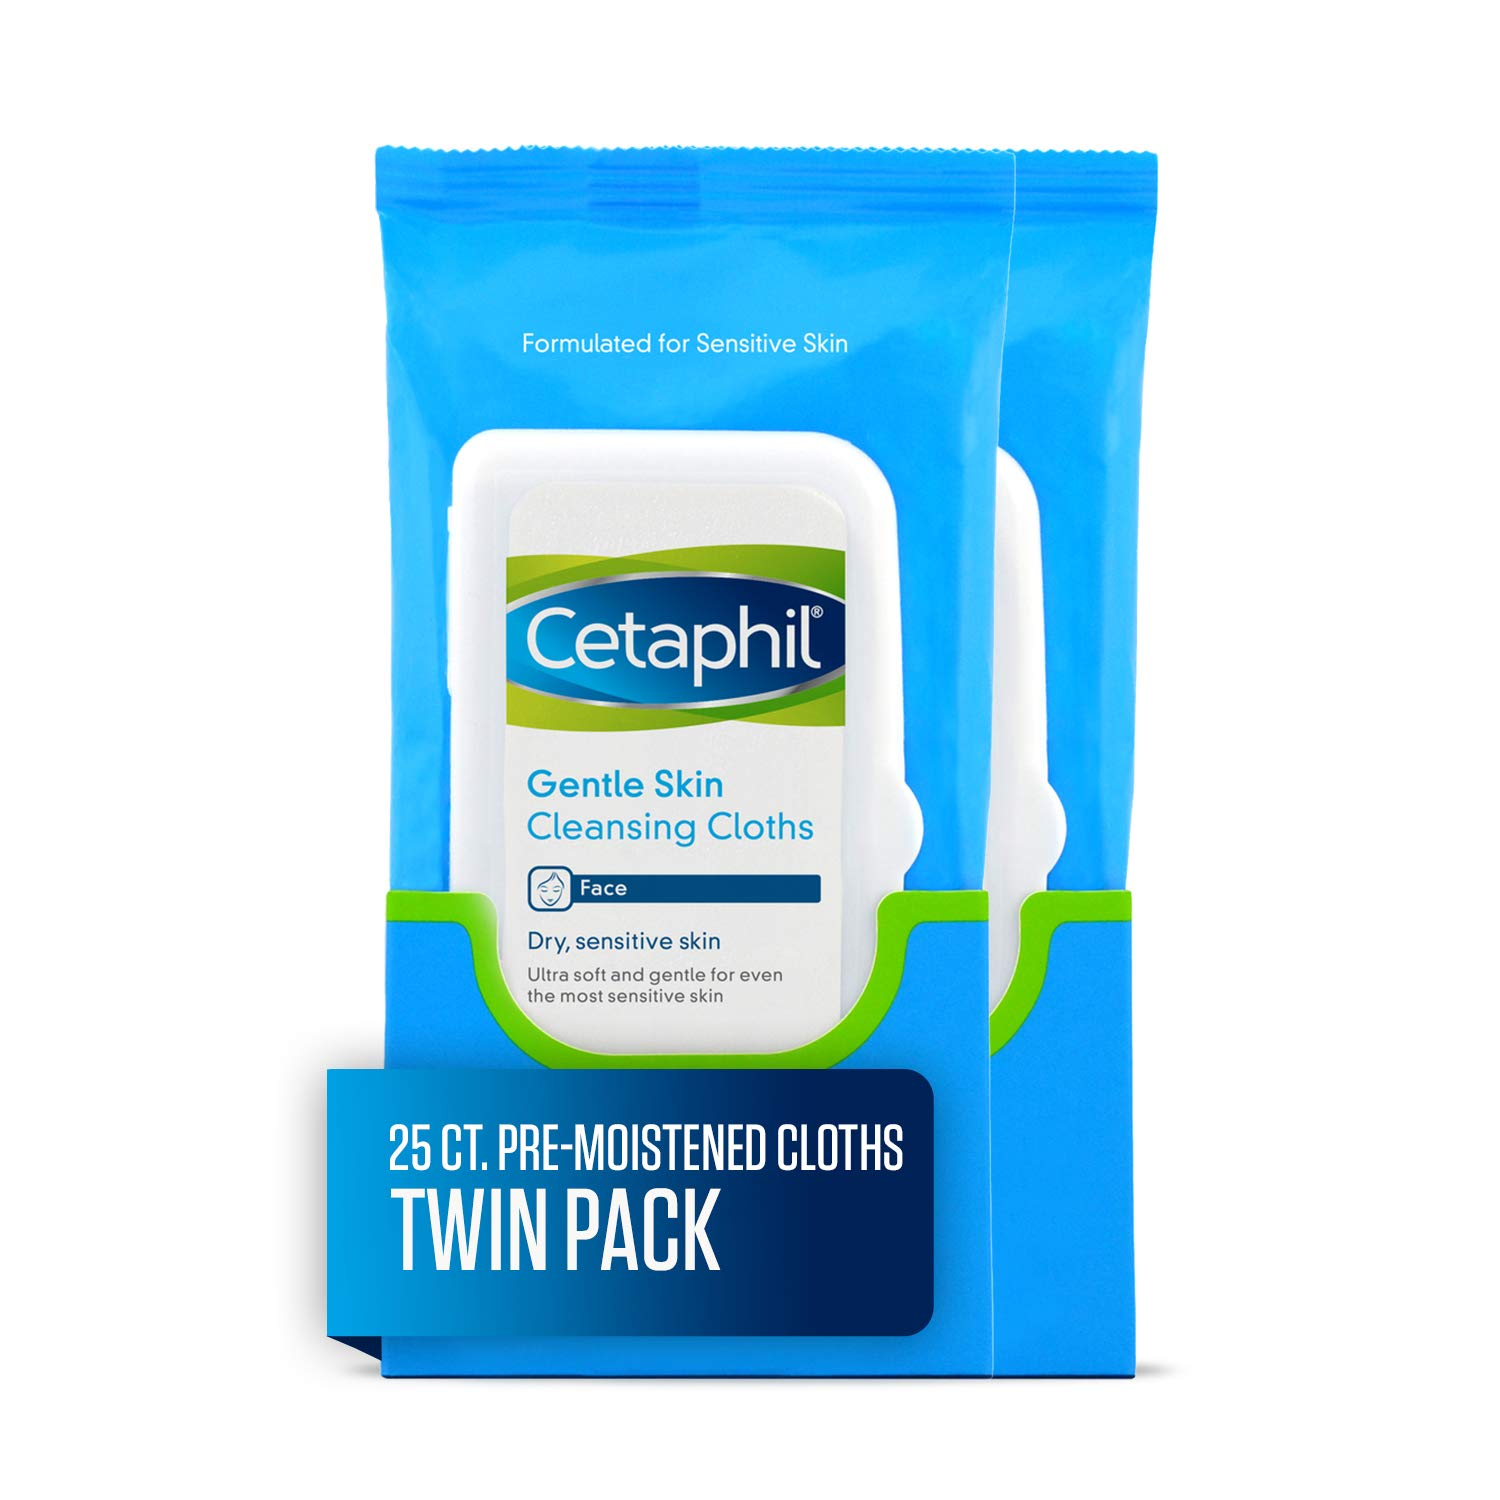 Cetaphil - Cetaphil Gentle Skin Cleansing Cloths, 50 Count